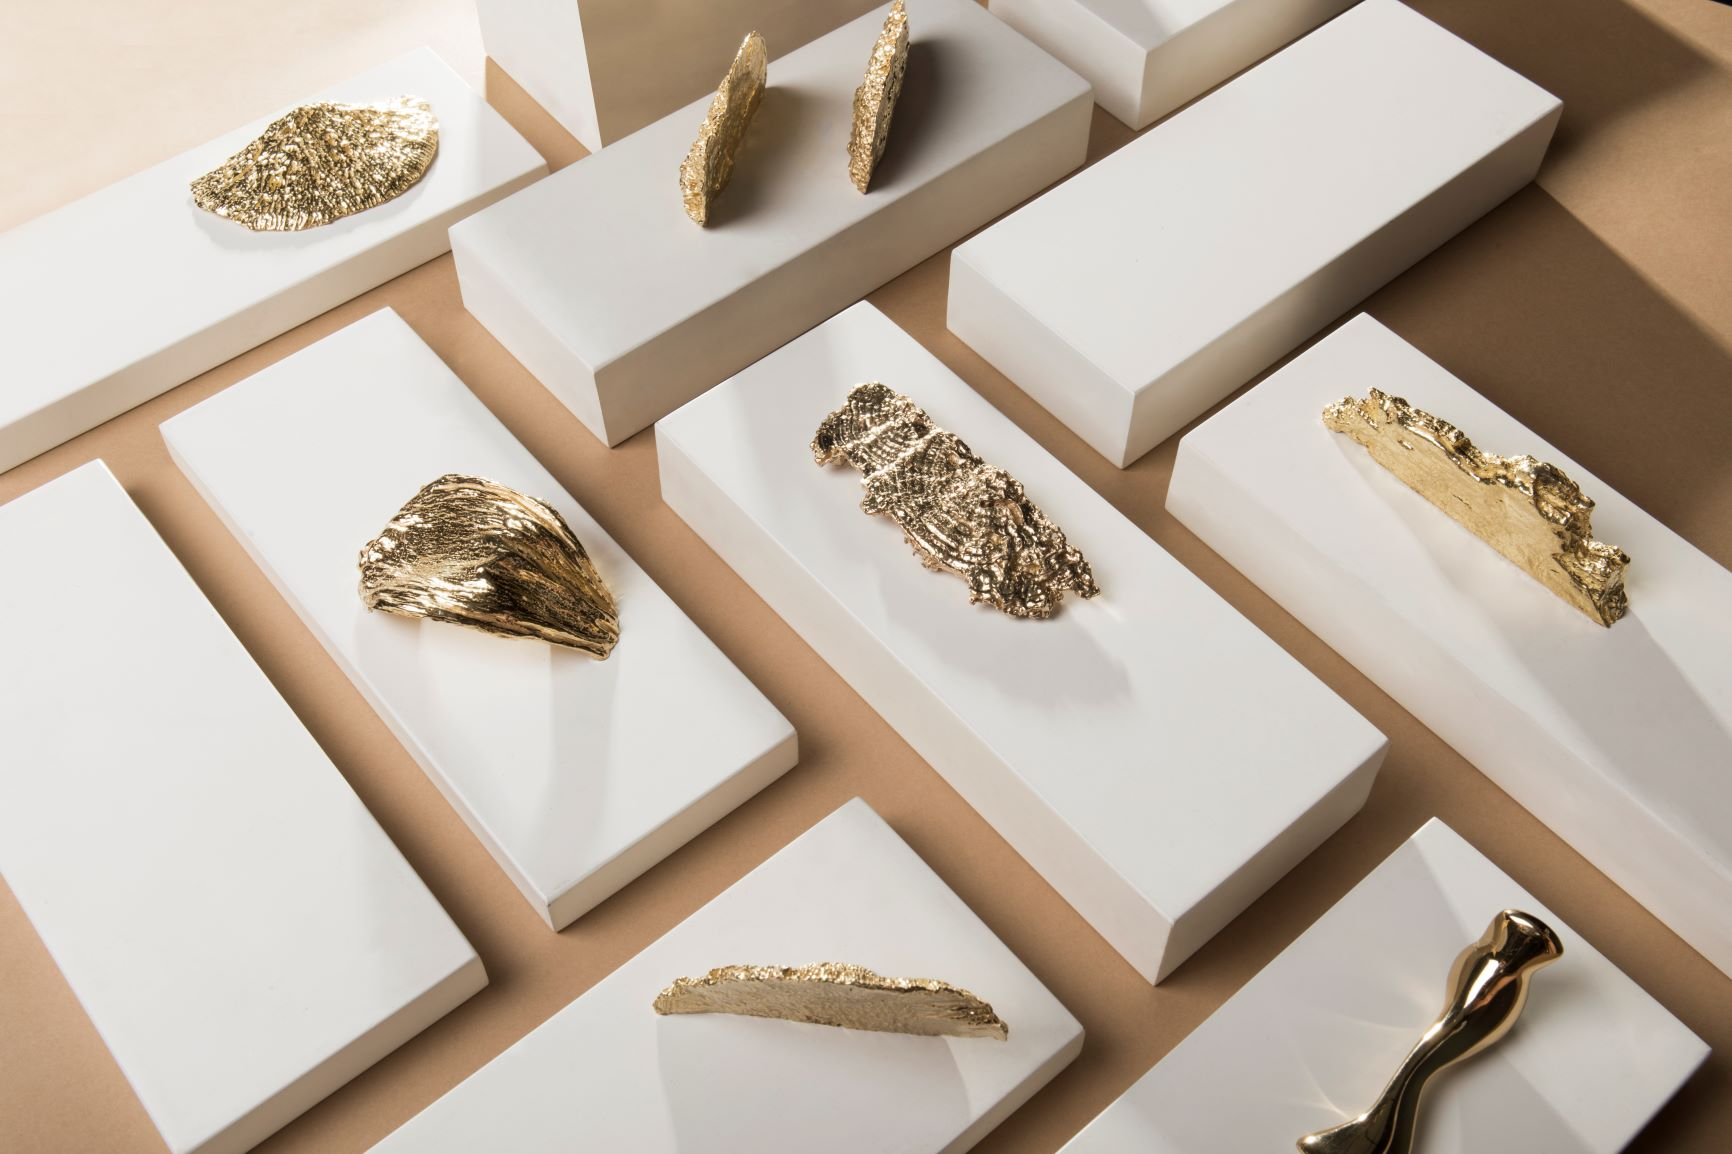 Luxury Hardware: Earth Collection maison et objet 2020 Maison et Objet 2020: New Hardware Trends pl 01